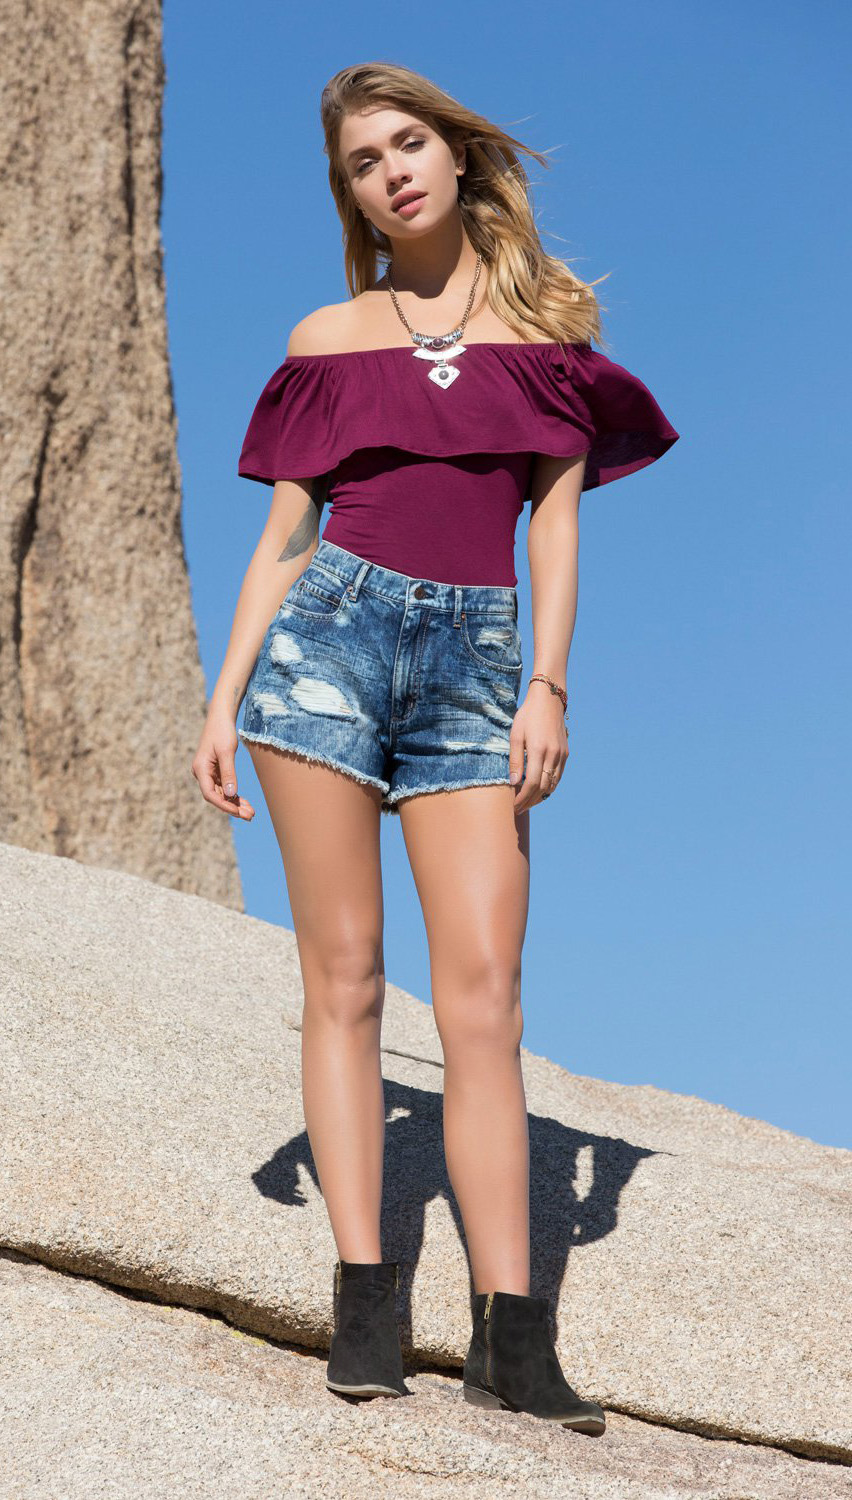 blue-med-shorts-purple-royal-top-offshoulder-denim-necklace-black-shoe-booties-blonde-howtowear-fashion-style-outfit-spring-summer-festival-weekend.jpg